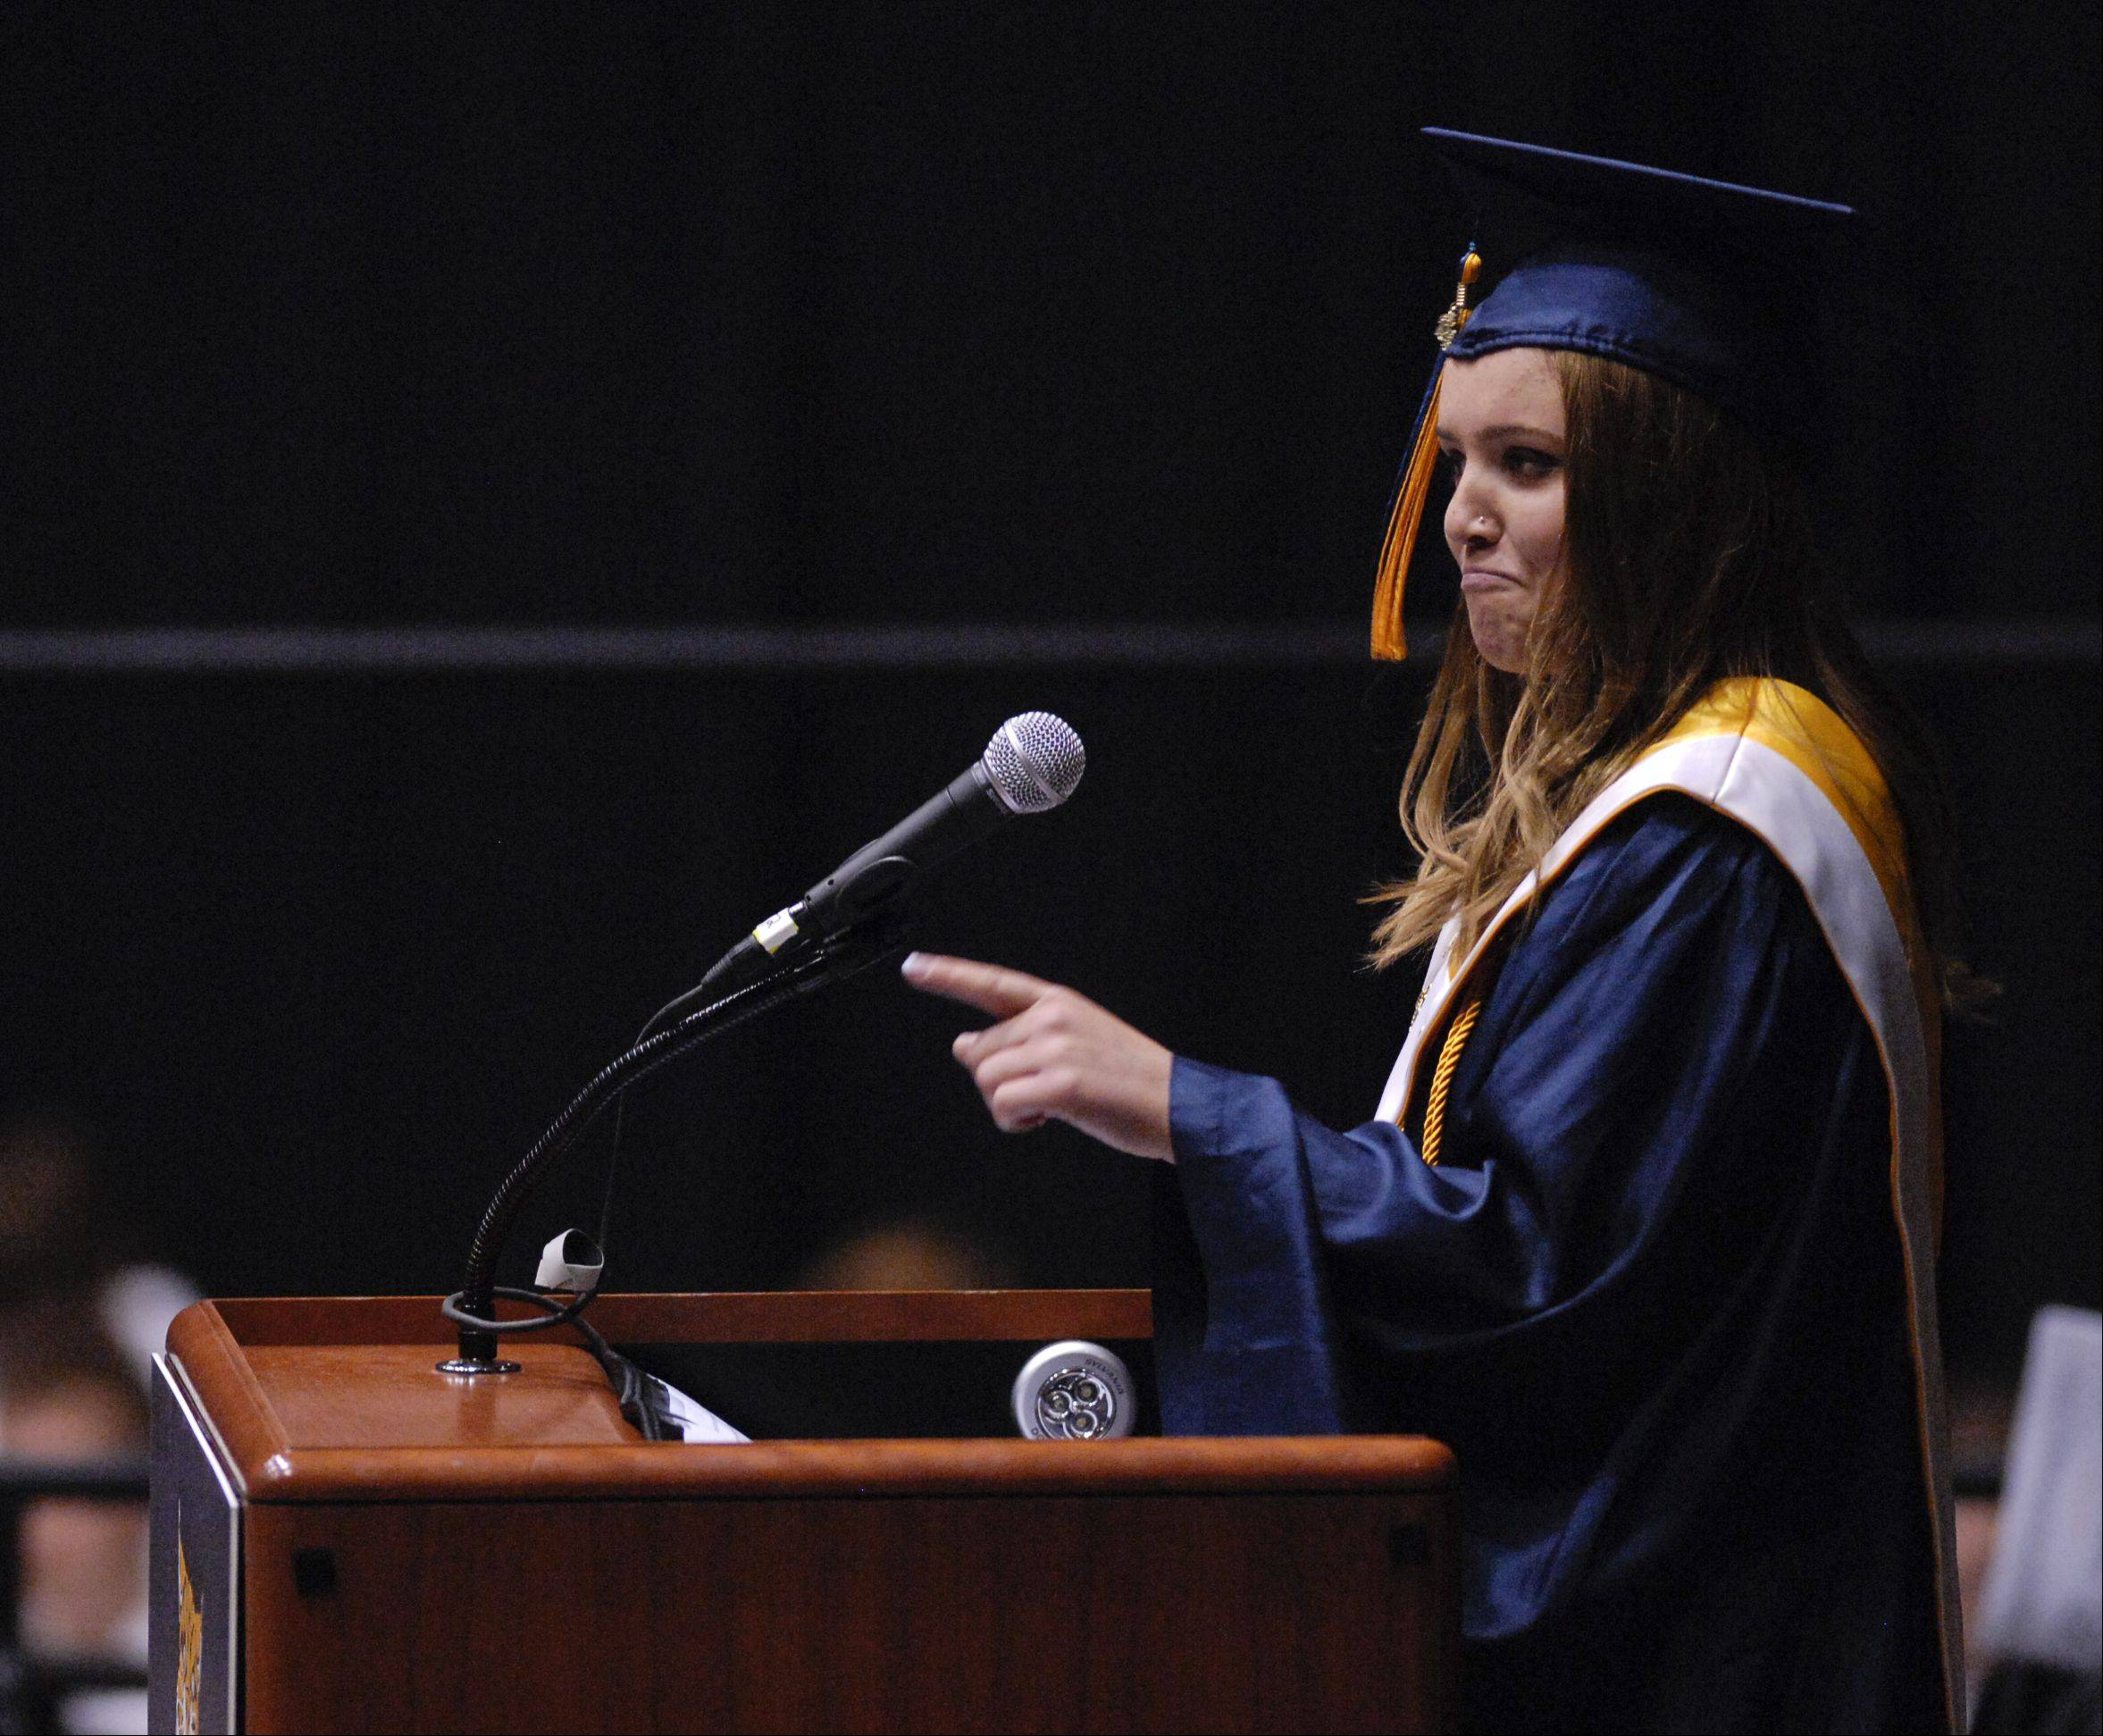 Abby Hanneman gives the Senior Reflections Address during the Neuqua Valley High School graduation on Sunday, May 26 at the NIU Convocation Center in DeKalb.